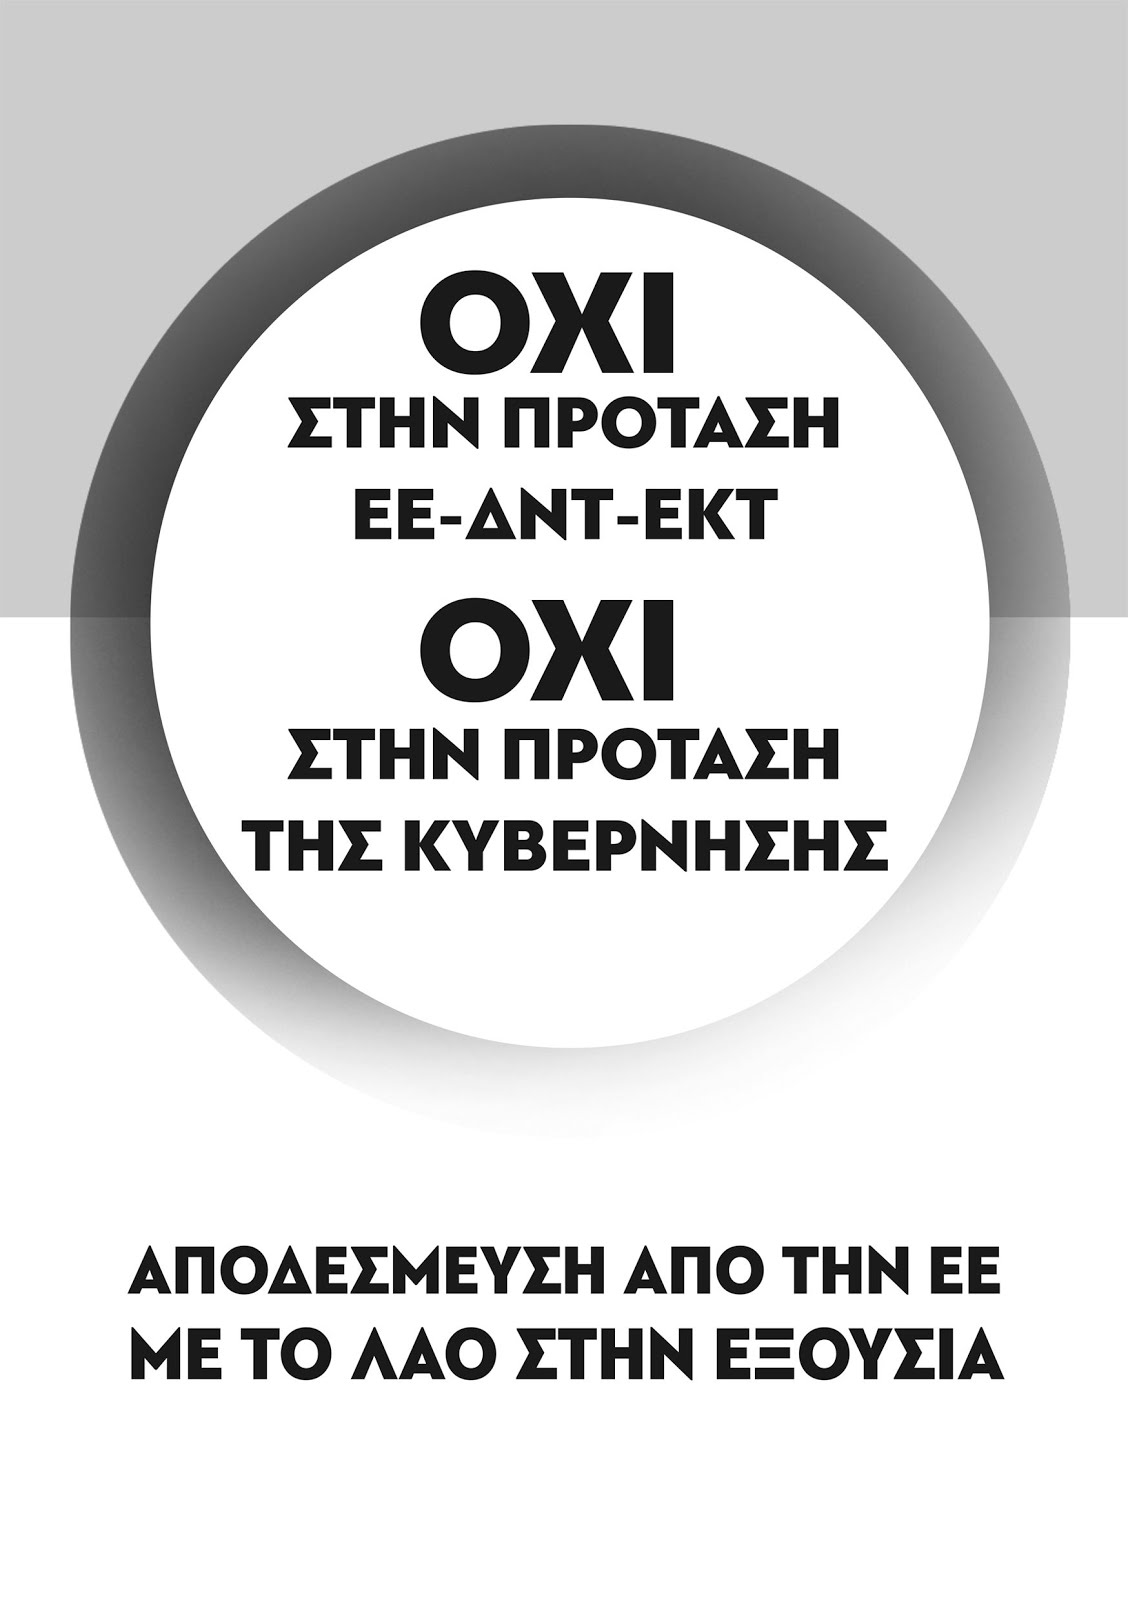 Η πρόταση του ΚΚΕ για το δημοψήφισμα: Διαδώστε την, τυπώστε την, ρίξτε την στην κάλπη!